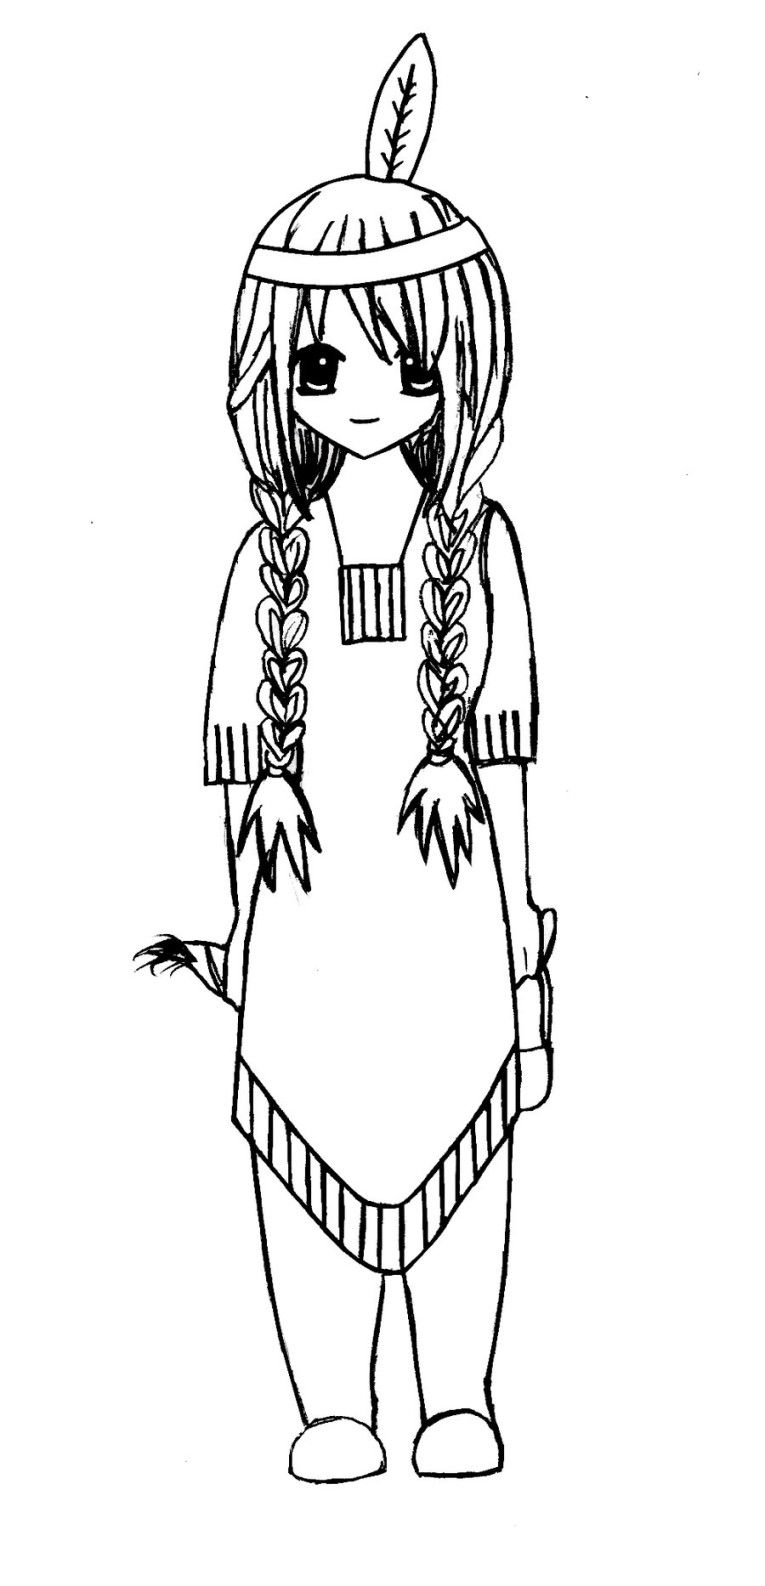 American Girl Coloring Pages Coloringspace Com Coloring Pages